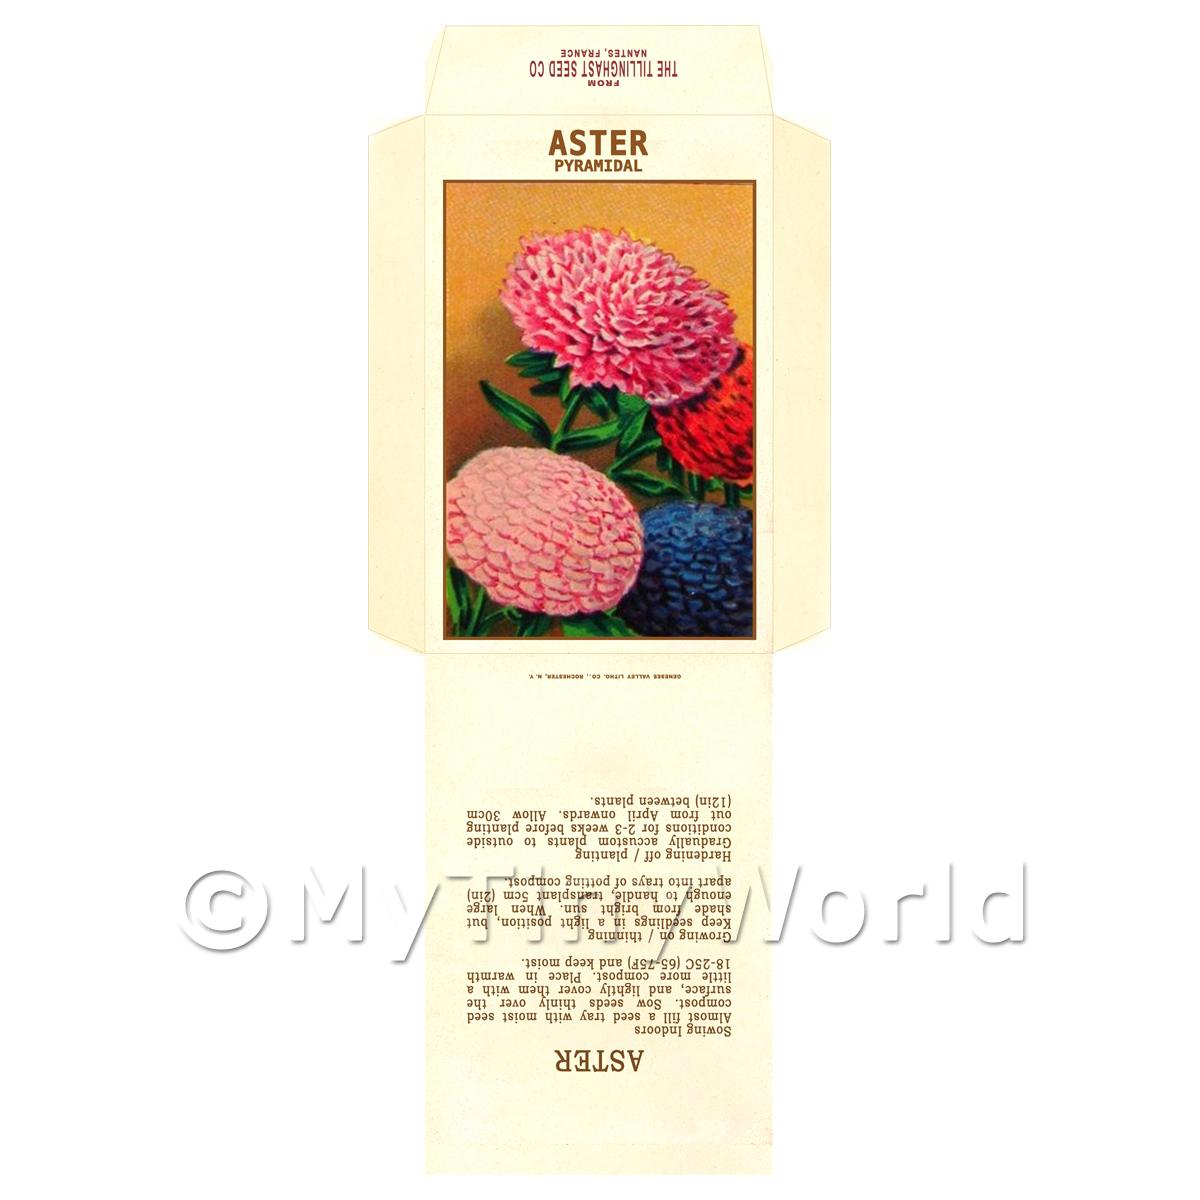 Pyramidal Aster Dolls House Miniature Seed Packet